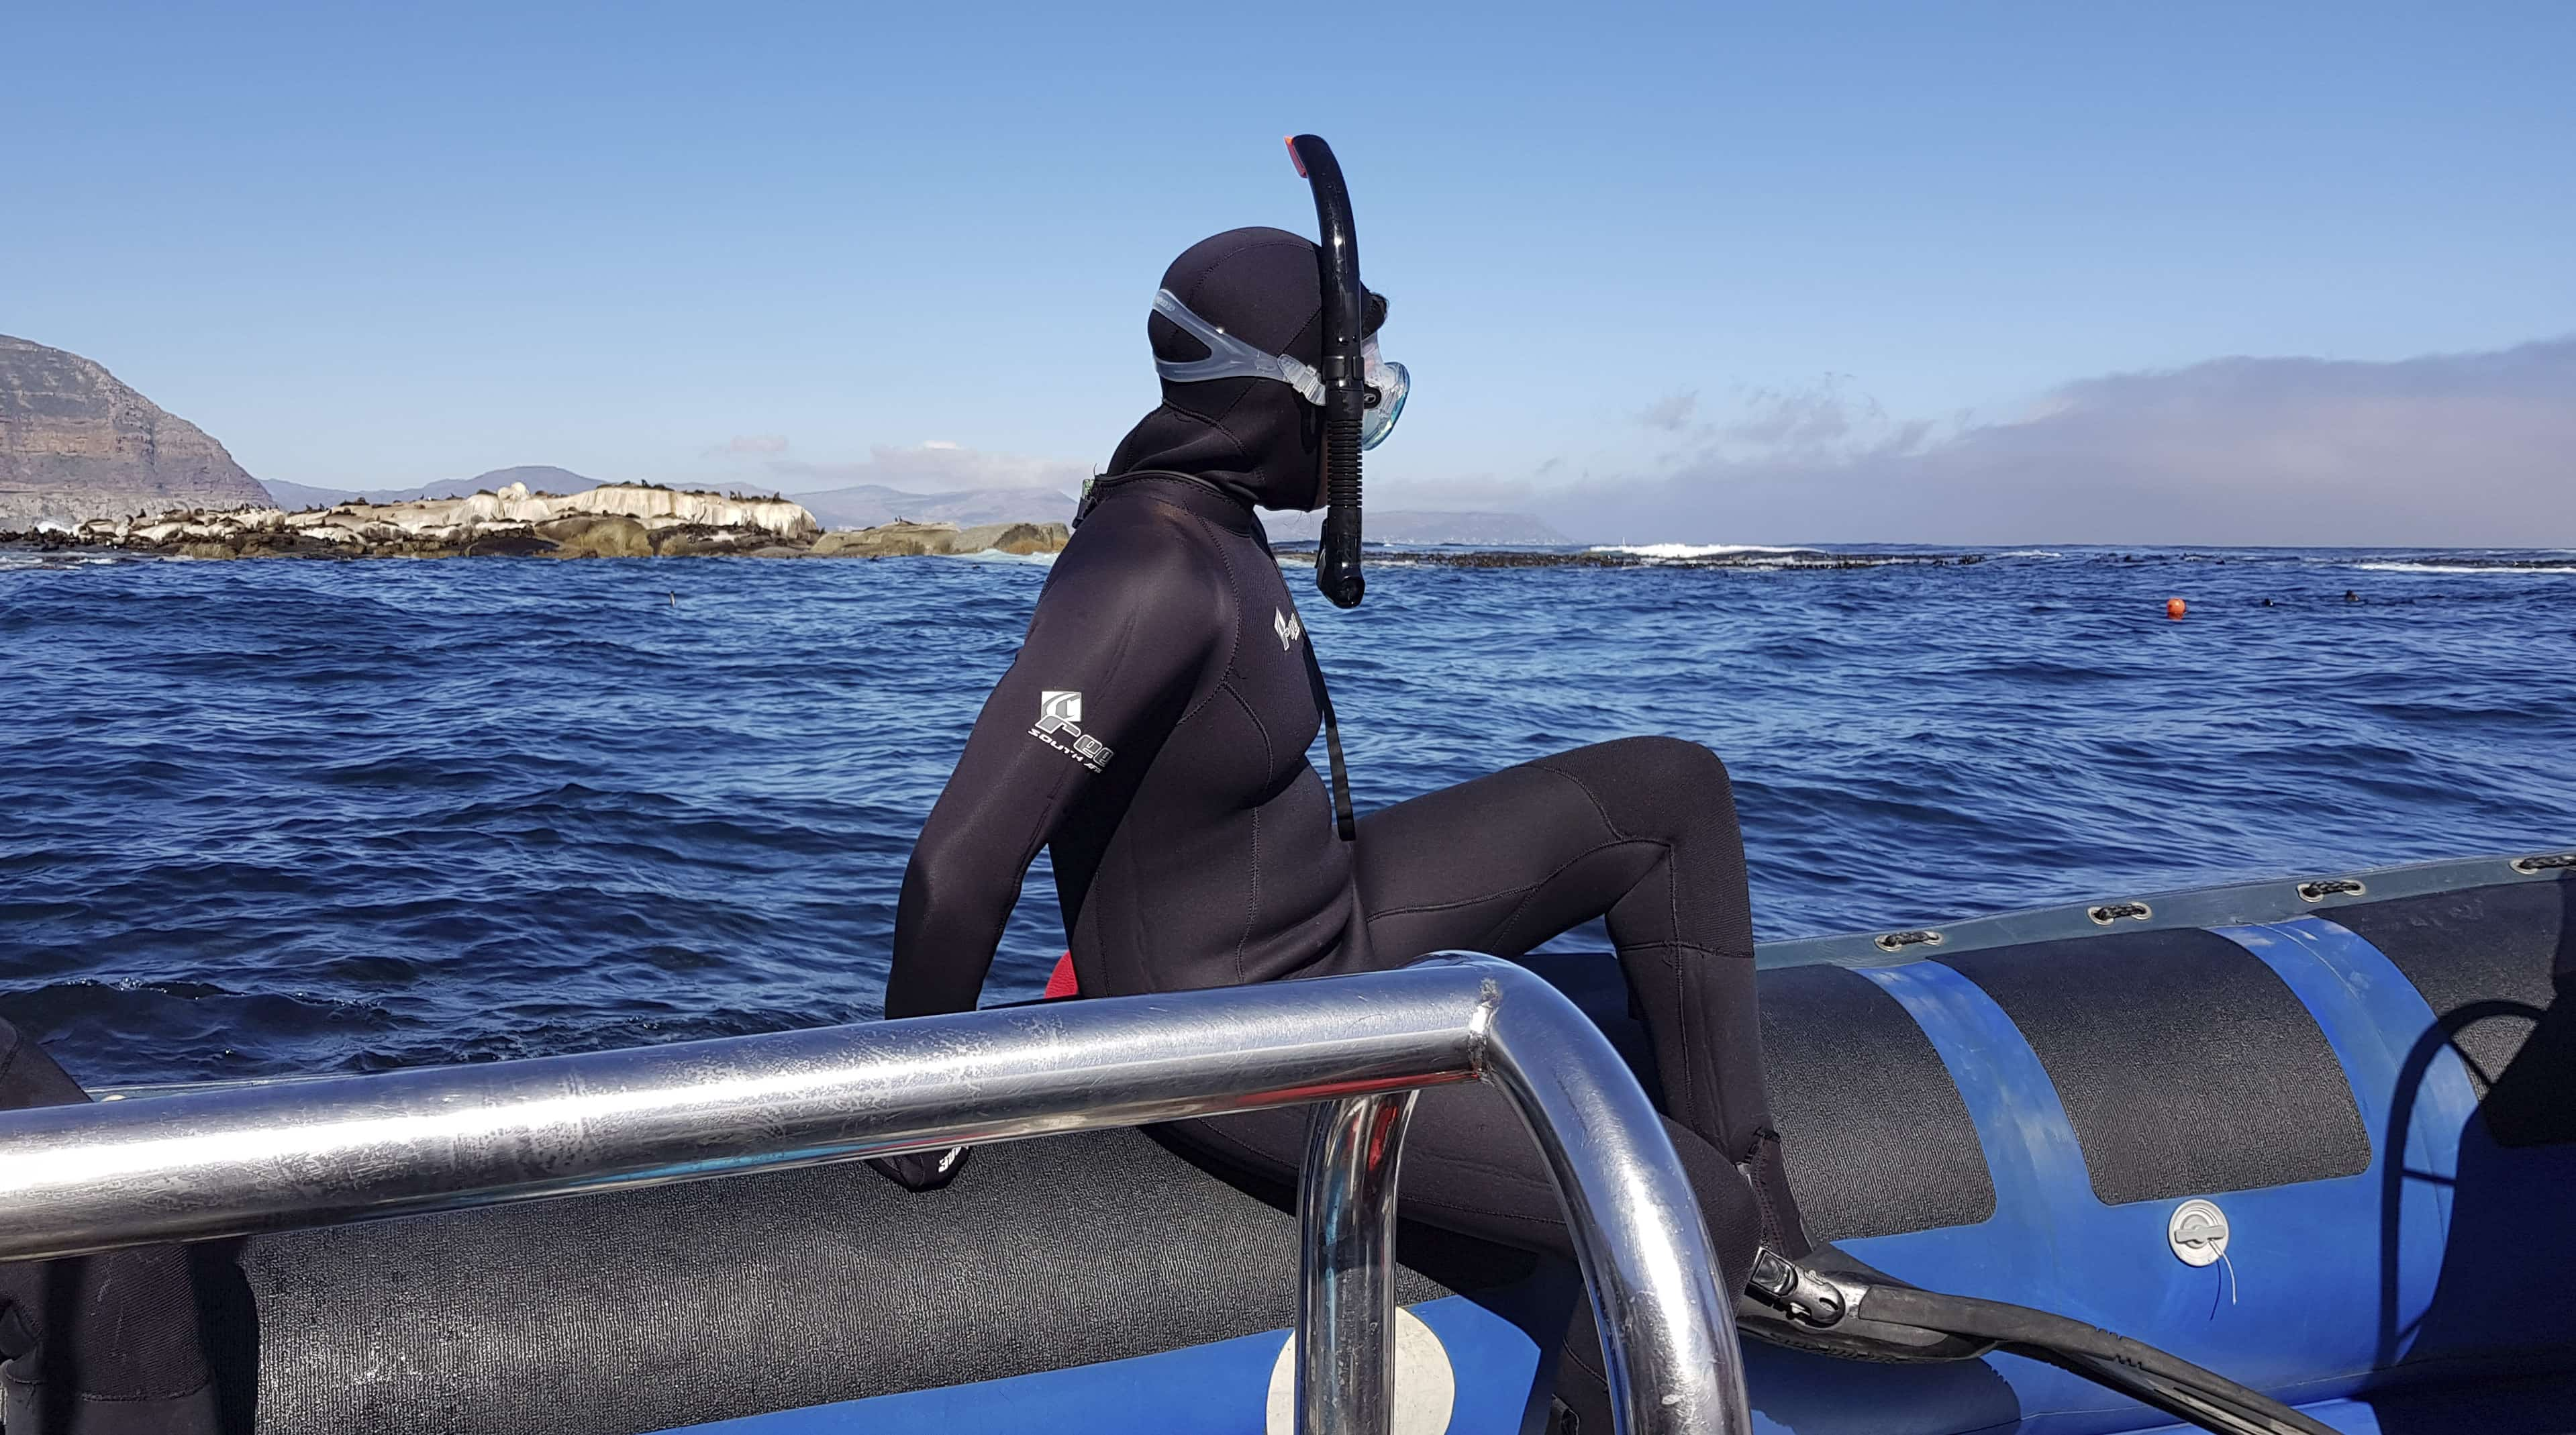 I went snorkelling with seals. Here are 5 things you need to know.